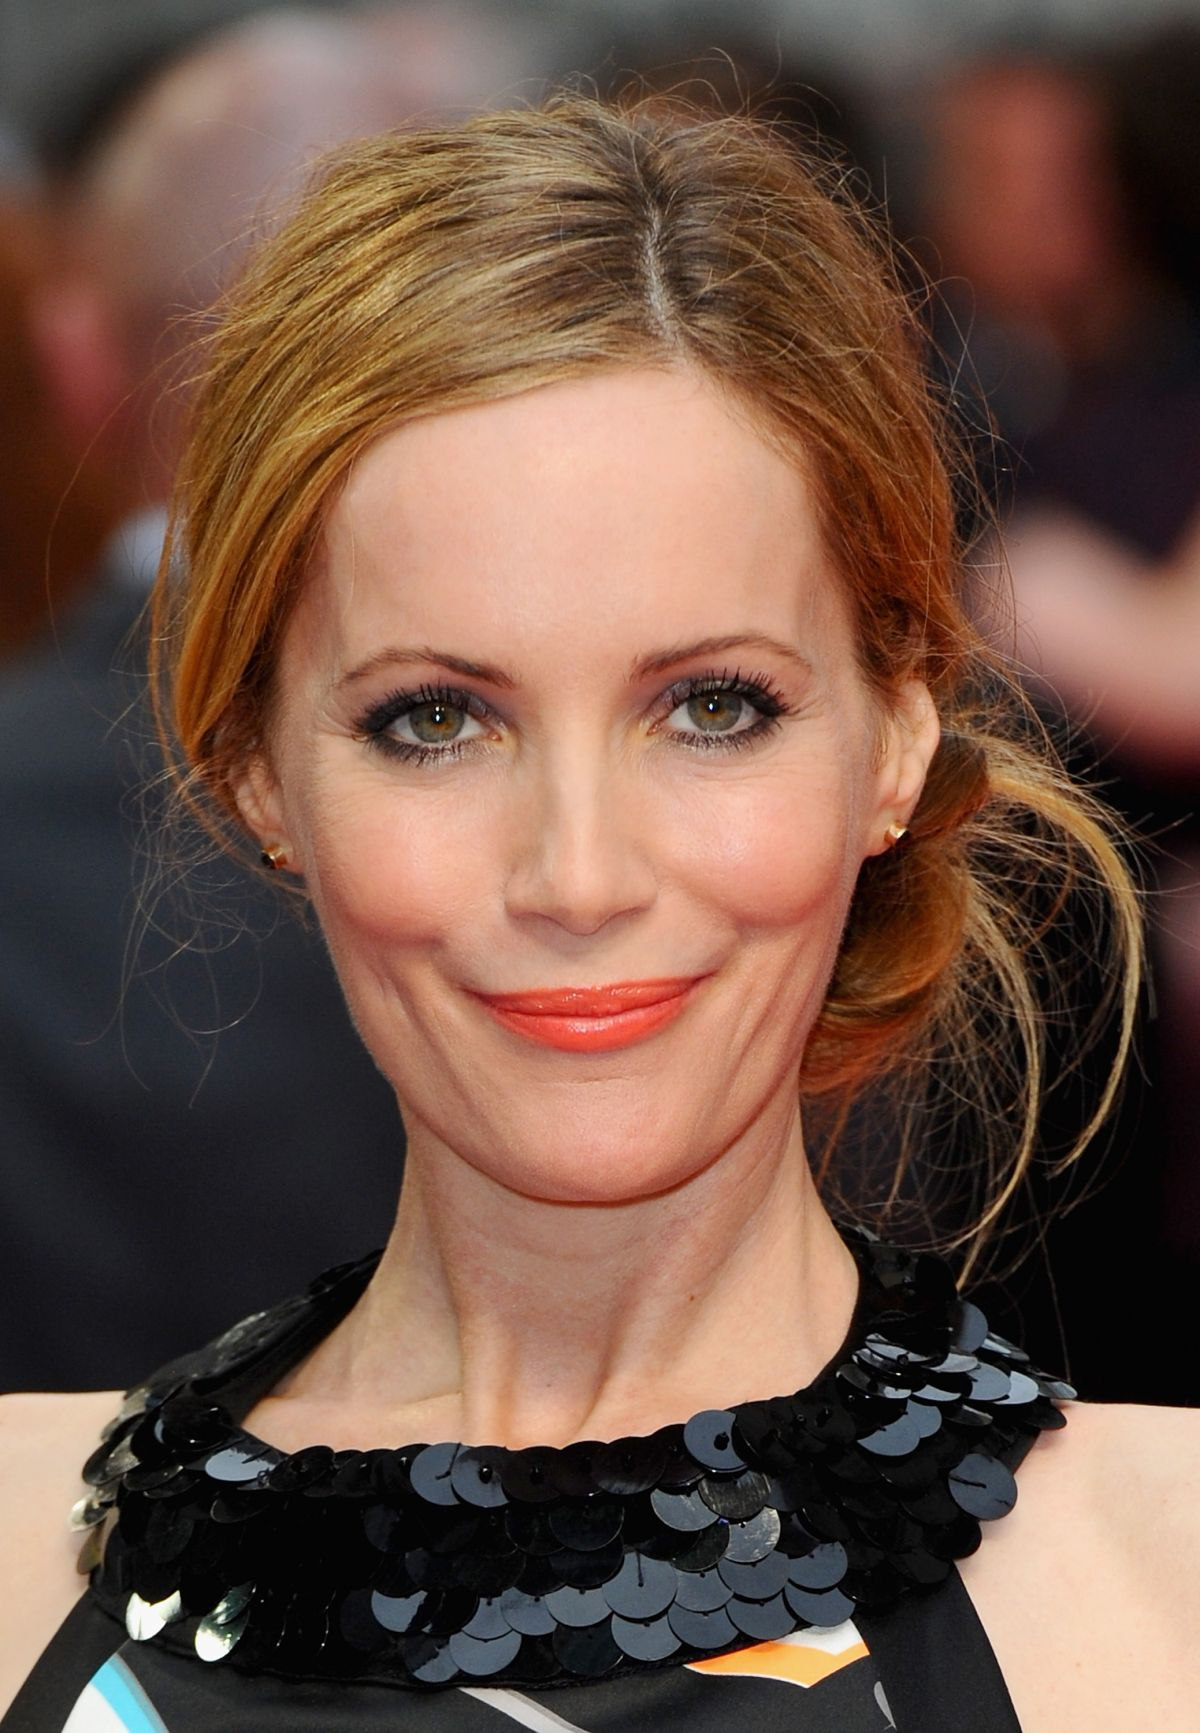 <b>LESLIE MANN</b> at The Other Woman Premiere in London - leslie-mann-at-the-other-woman-premiere-in-london_2